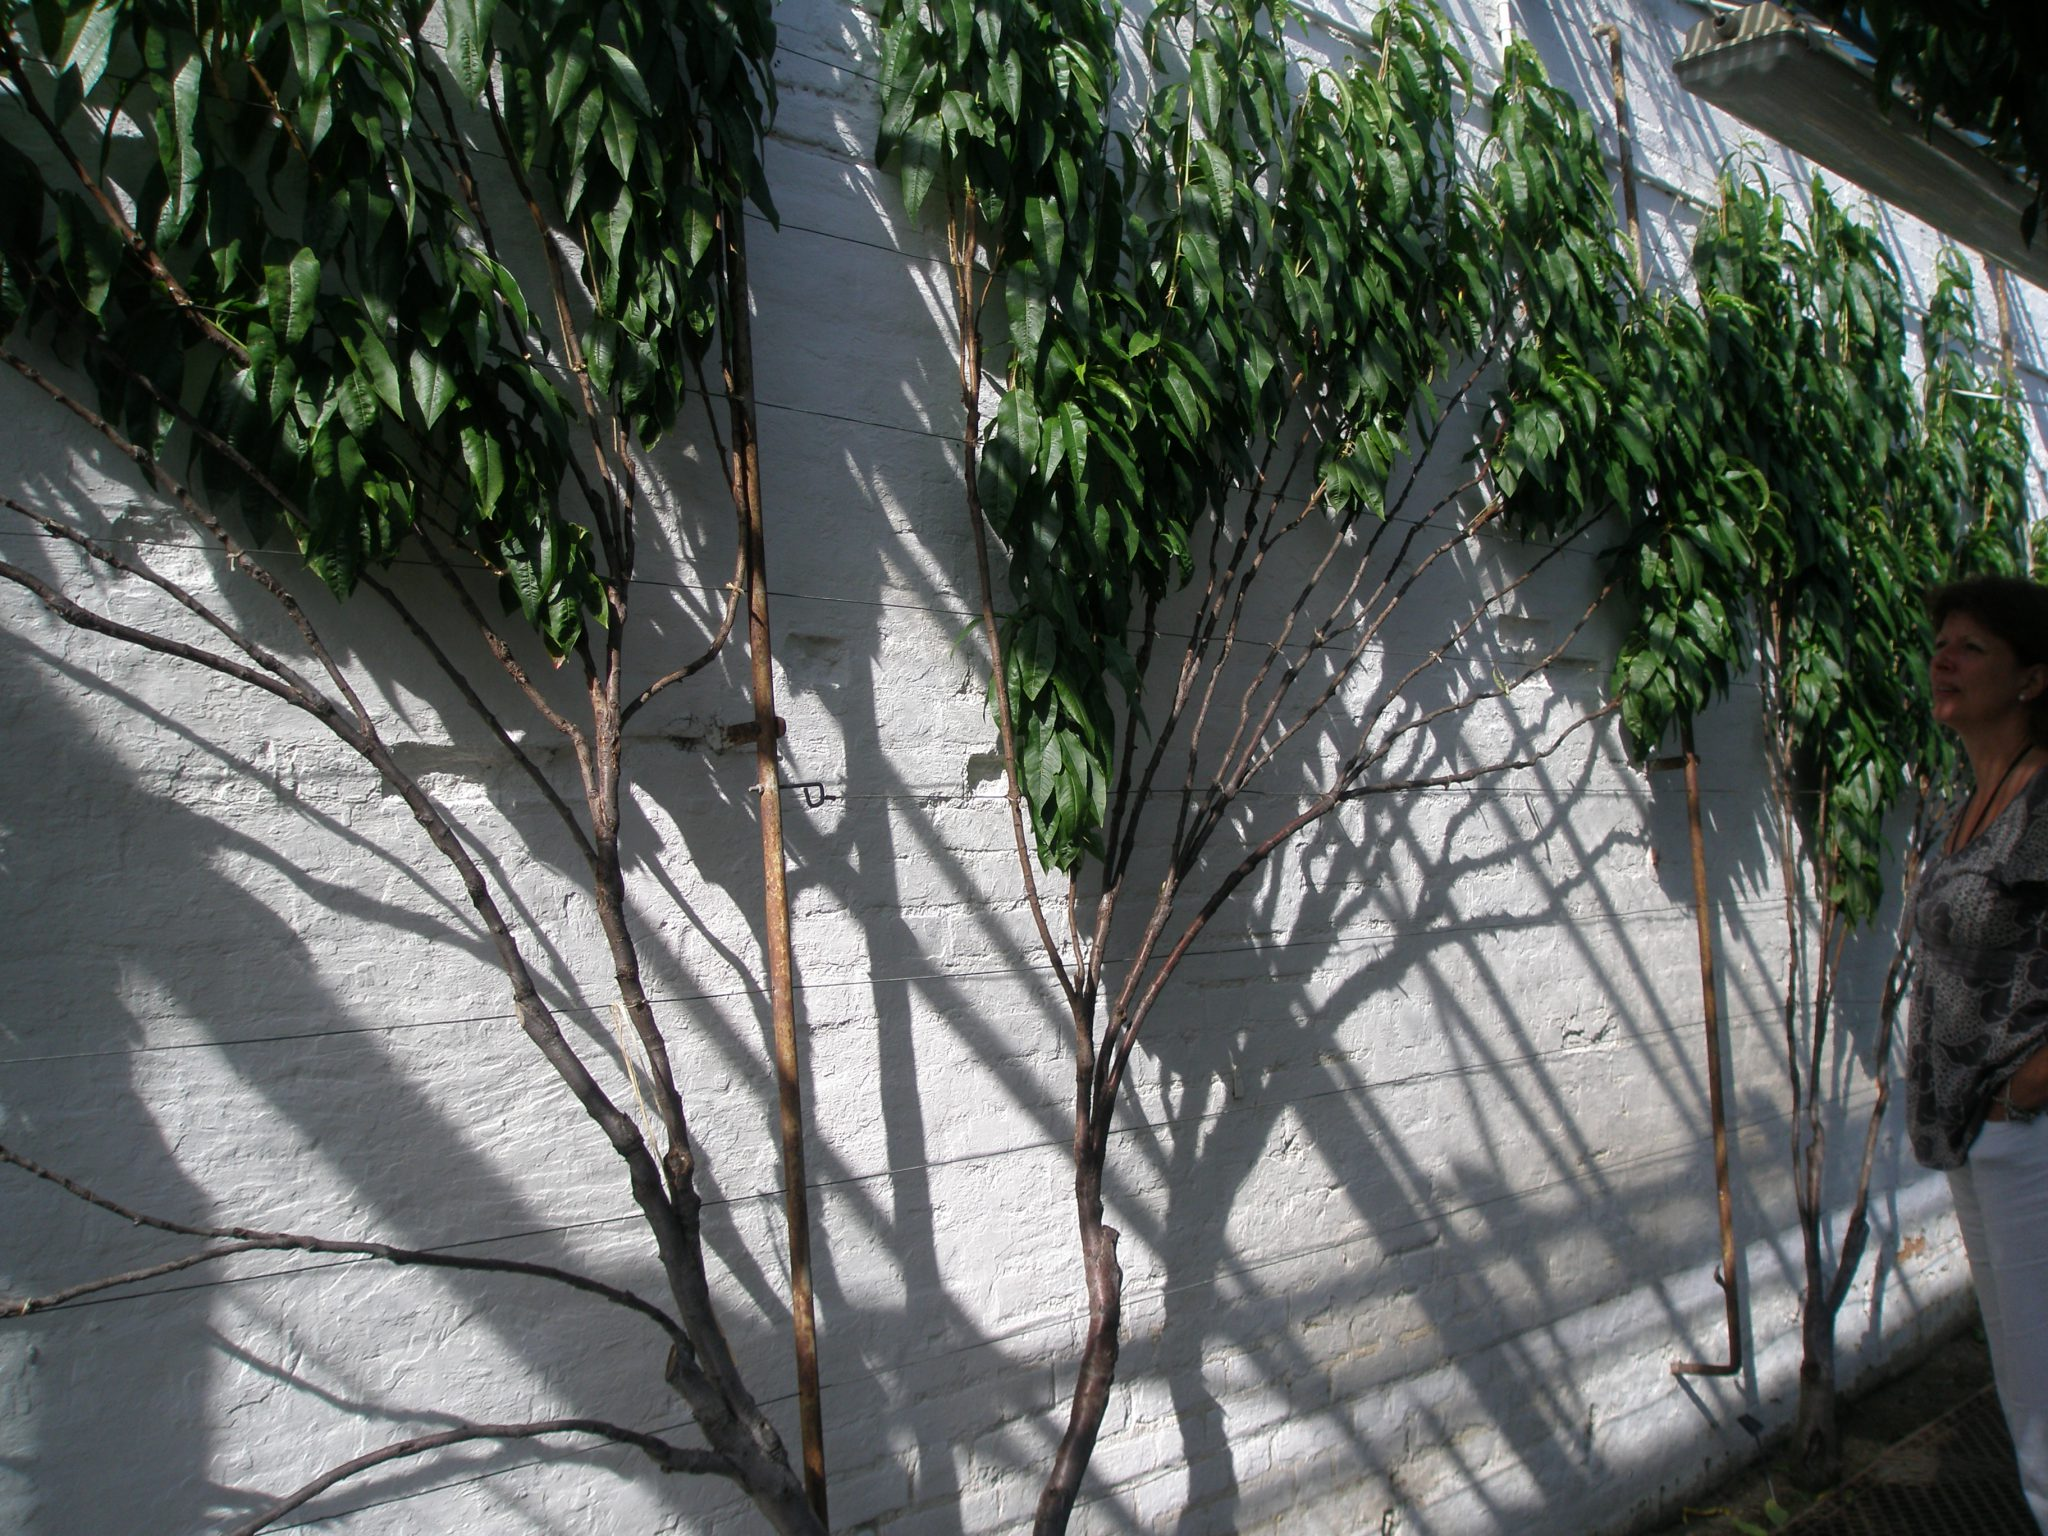 Espaliered trees in a glasshouse